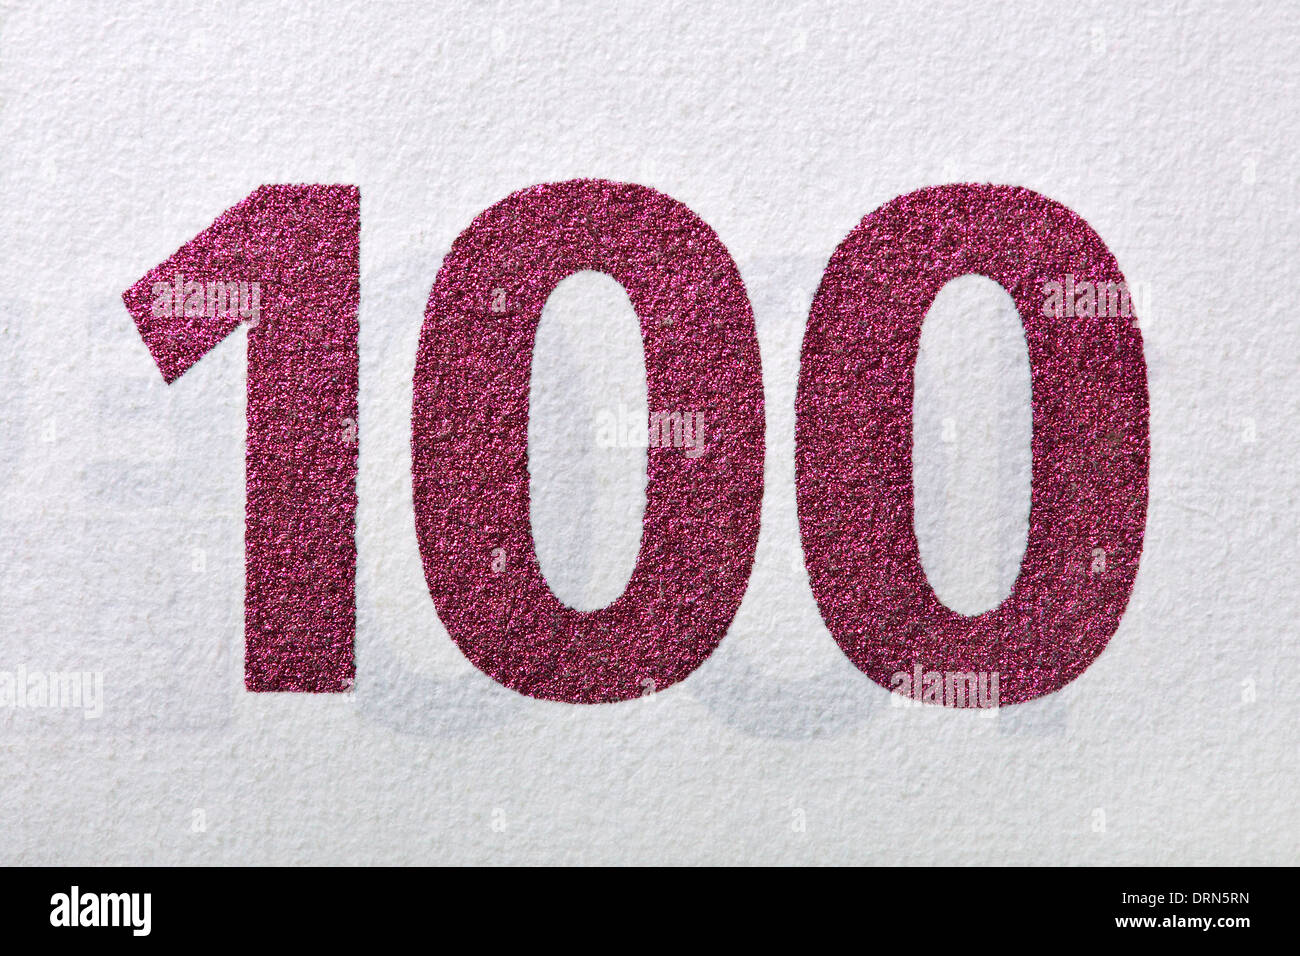 cypher one hundred, ruby colored, detail of an euro banknote. Stock Photo